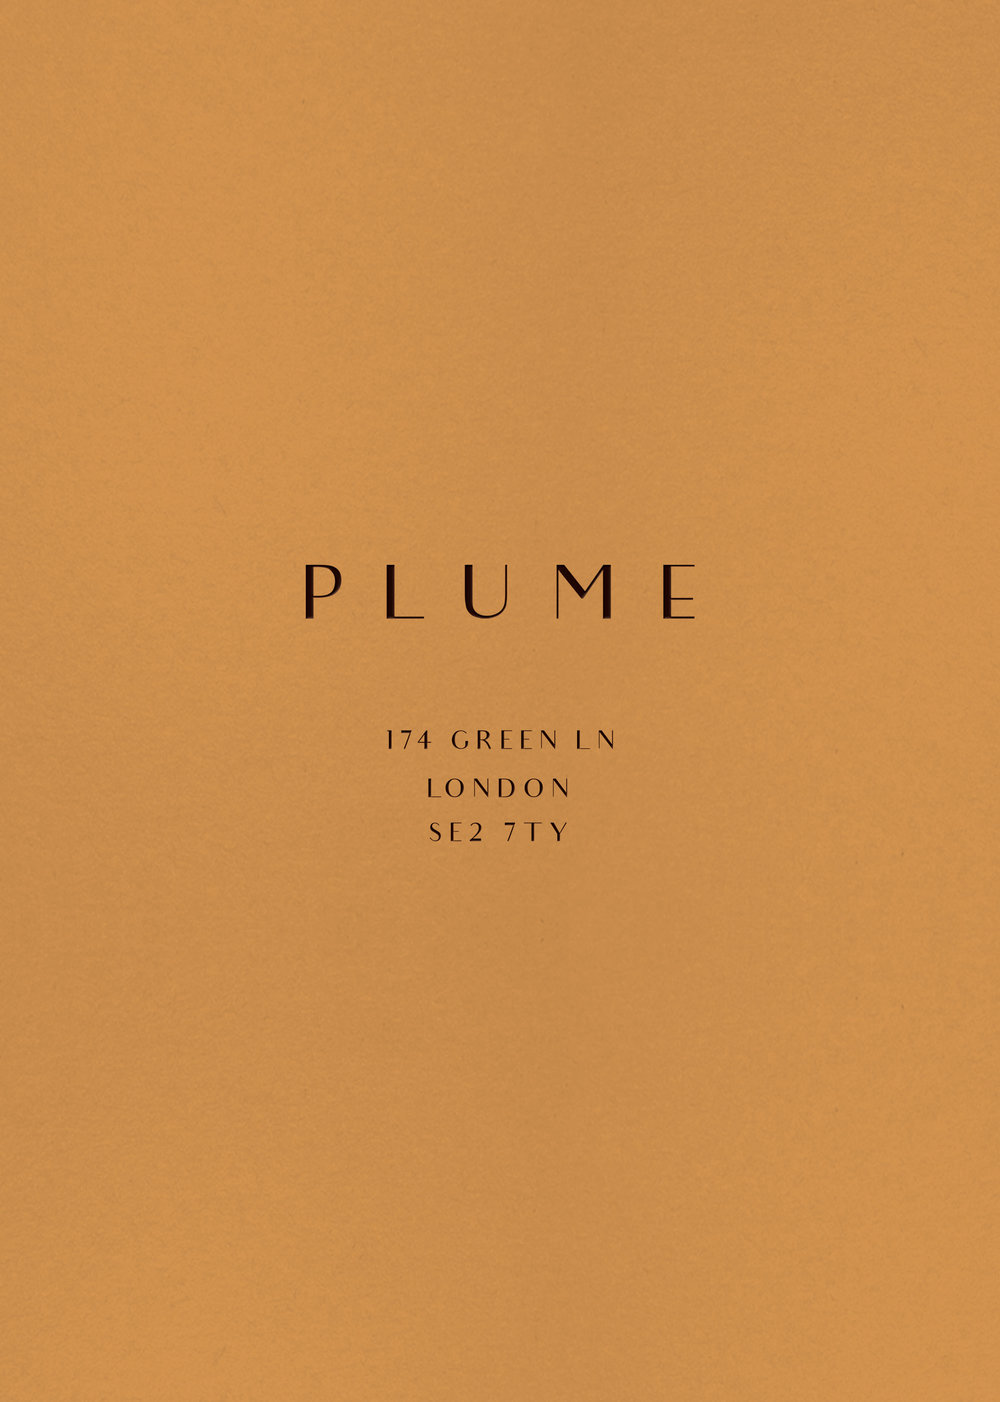 plume-fashion-logo-loolaadesigns.jpg